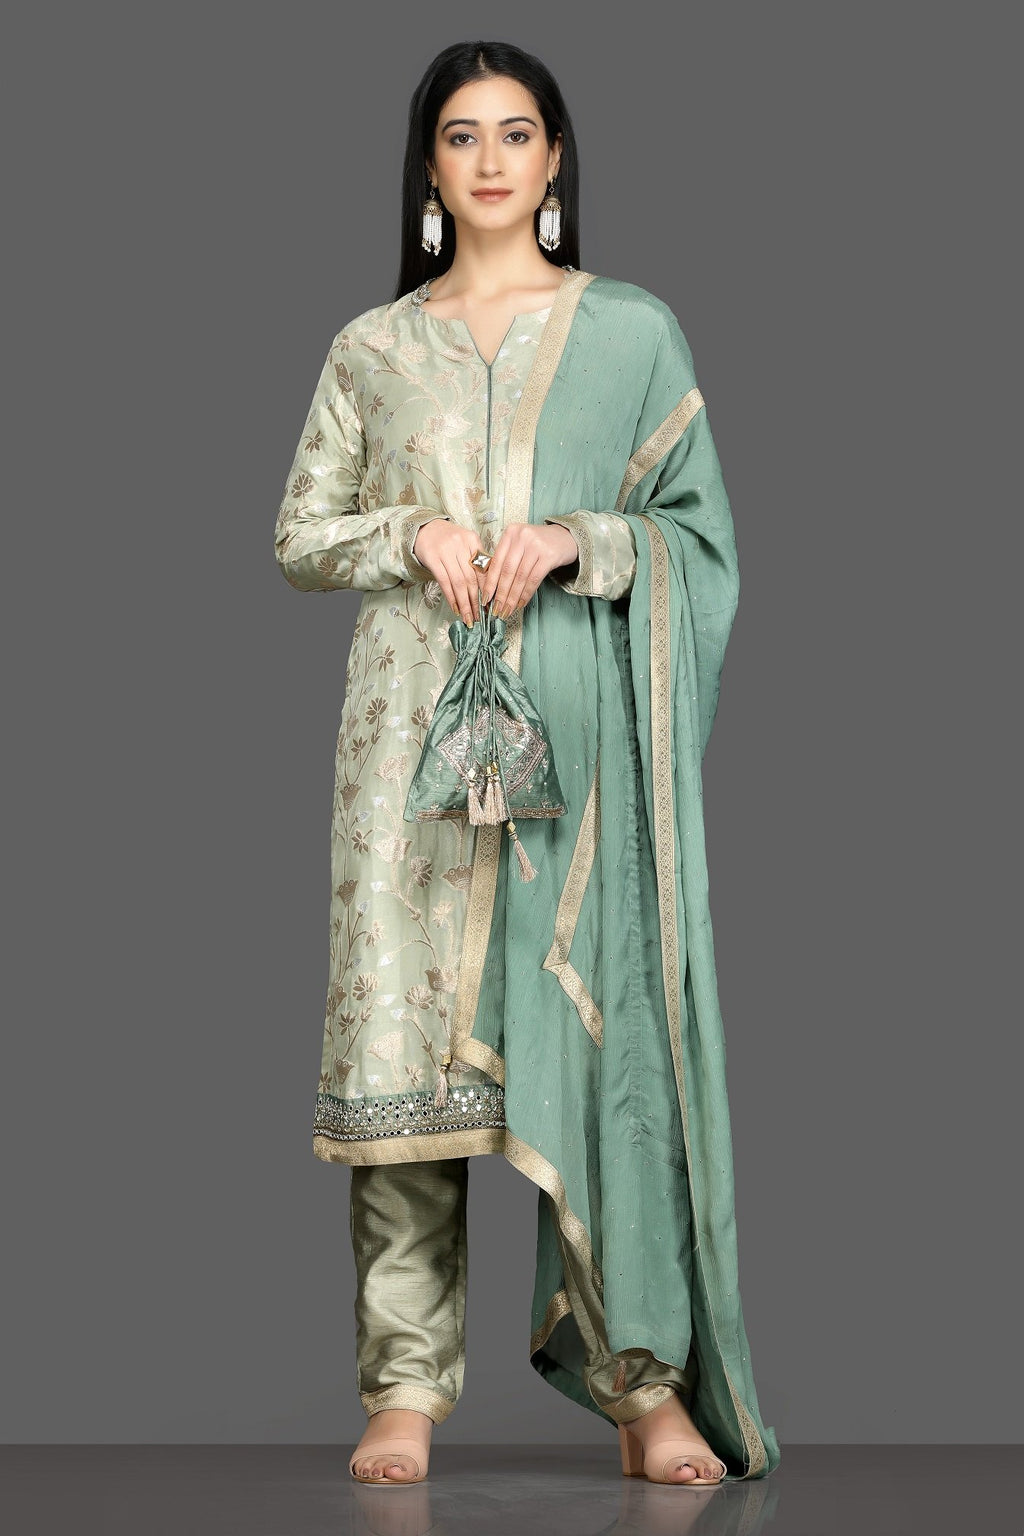 Shop elegant pista green embroidered pant suit online in USA with green dupatta. Flaunt your sartorial choices on special occasions with beautiful designer dresses, Anarkali suits, traditional salwar suits, Indian lehengas from Pure Elegance Indian fashion boutique in USA. -full view